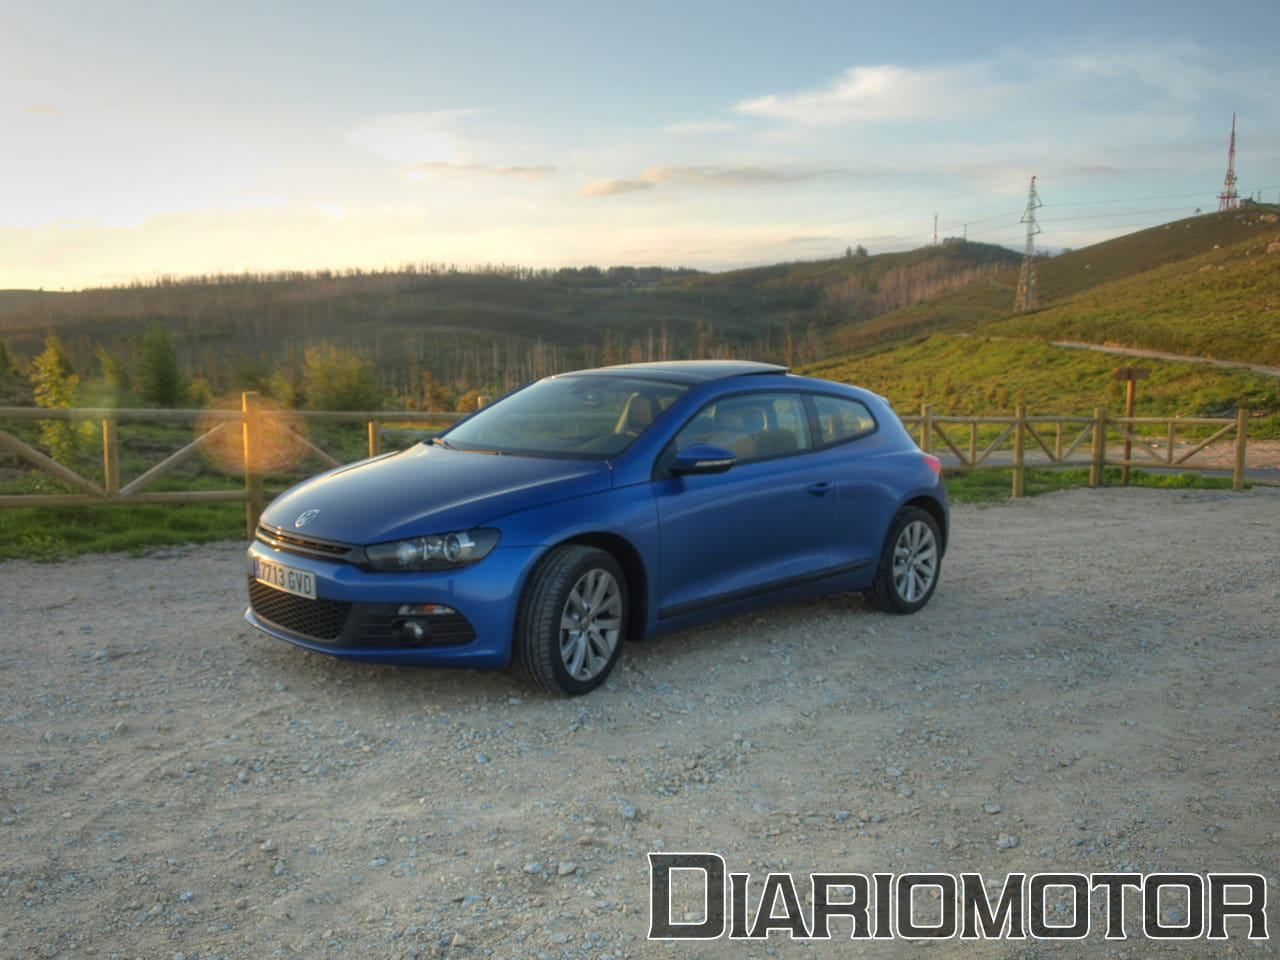 volkswagen scirocco 1 4 tsi de 160 cv vs 2 0 tdi de 140 cv mini prueba y comparativa i. Black Bedroom Furniture Sets. Home Design Ideas